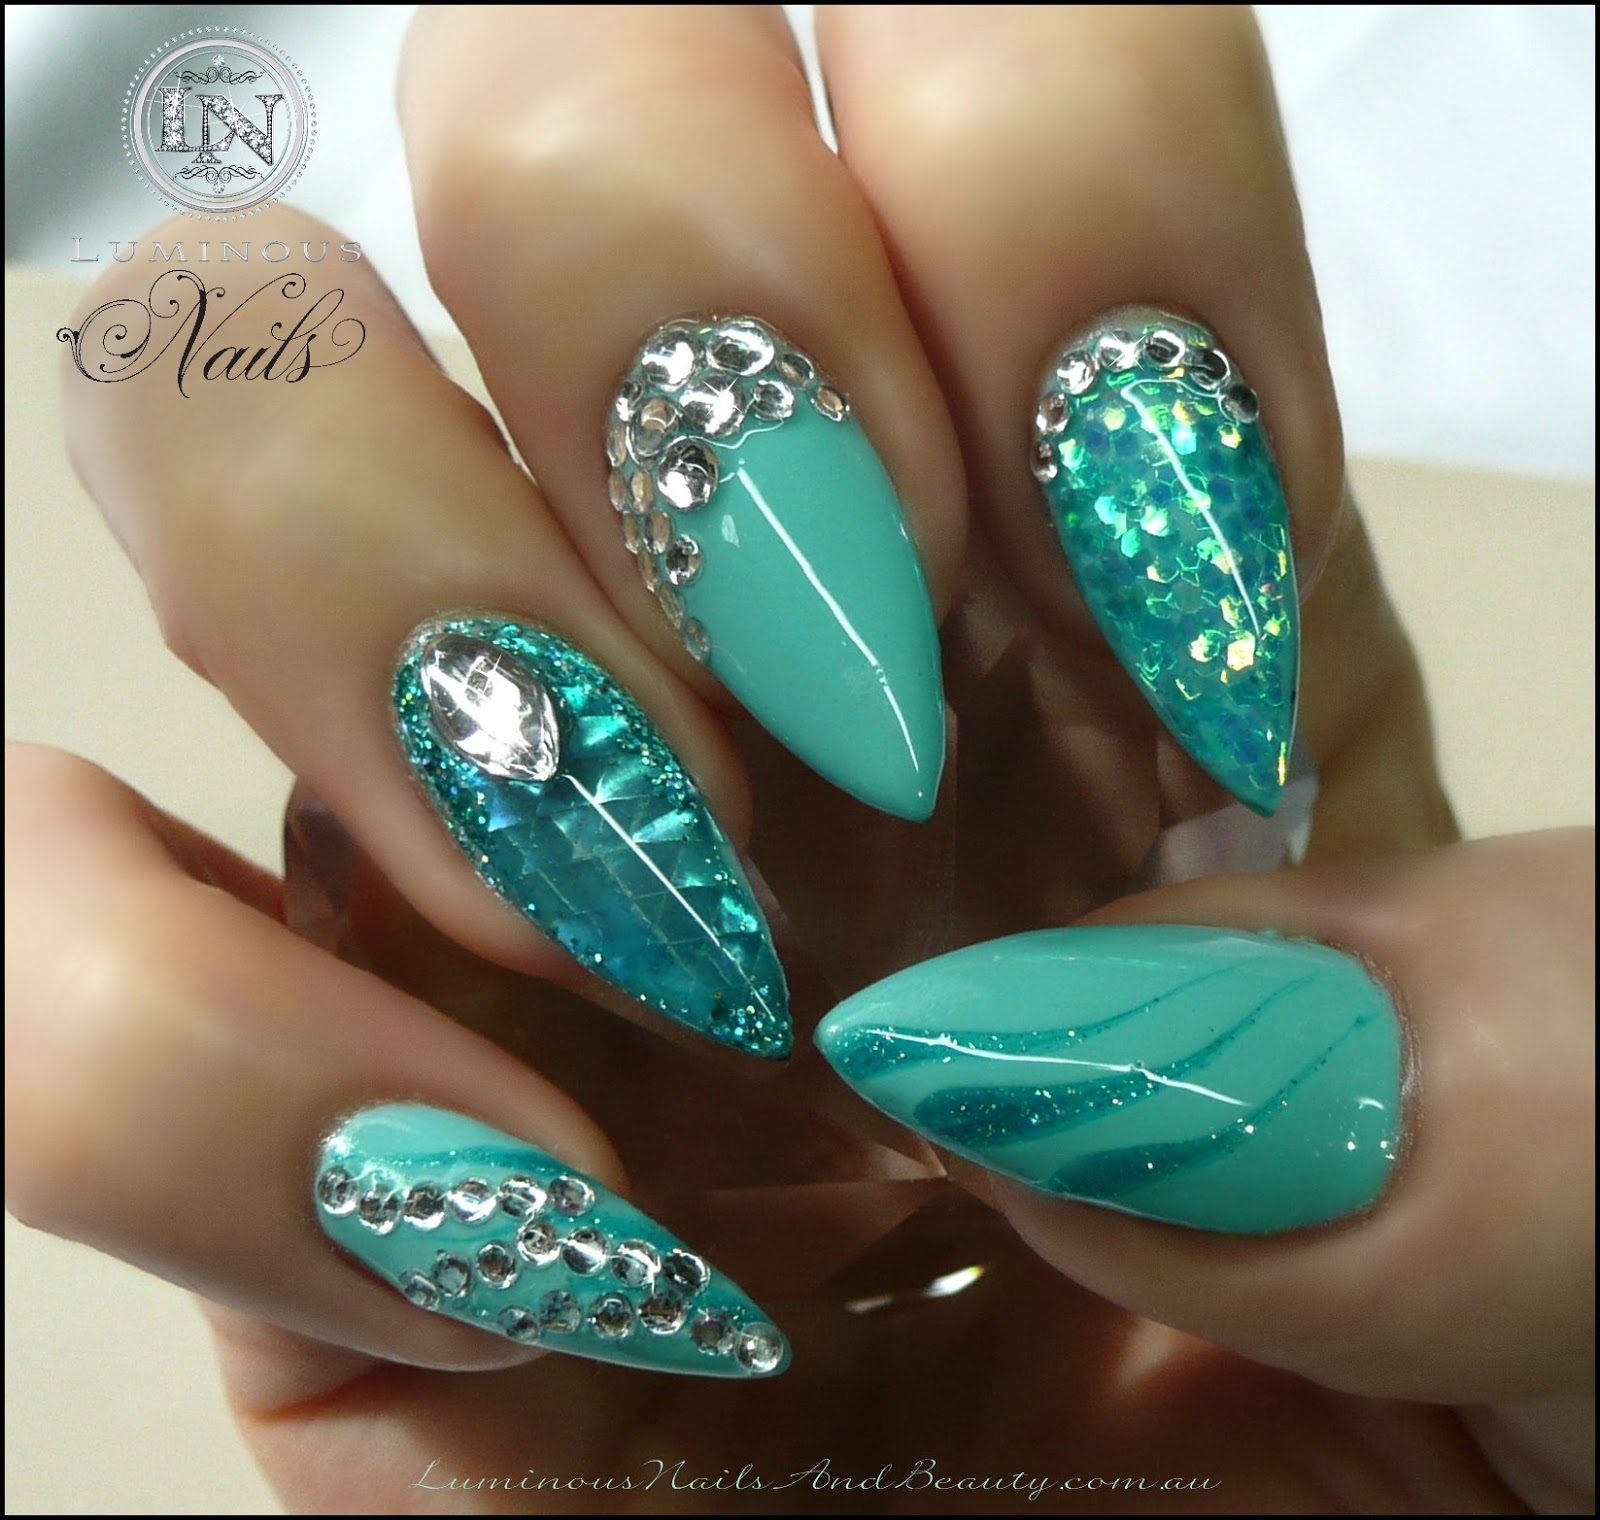 Aquamarine Nails with Glitter & Bling!...